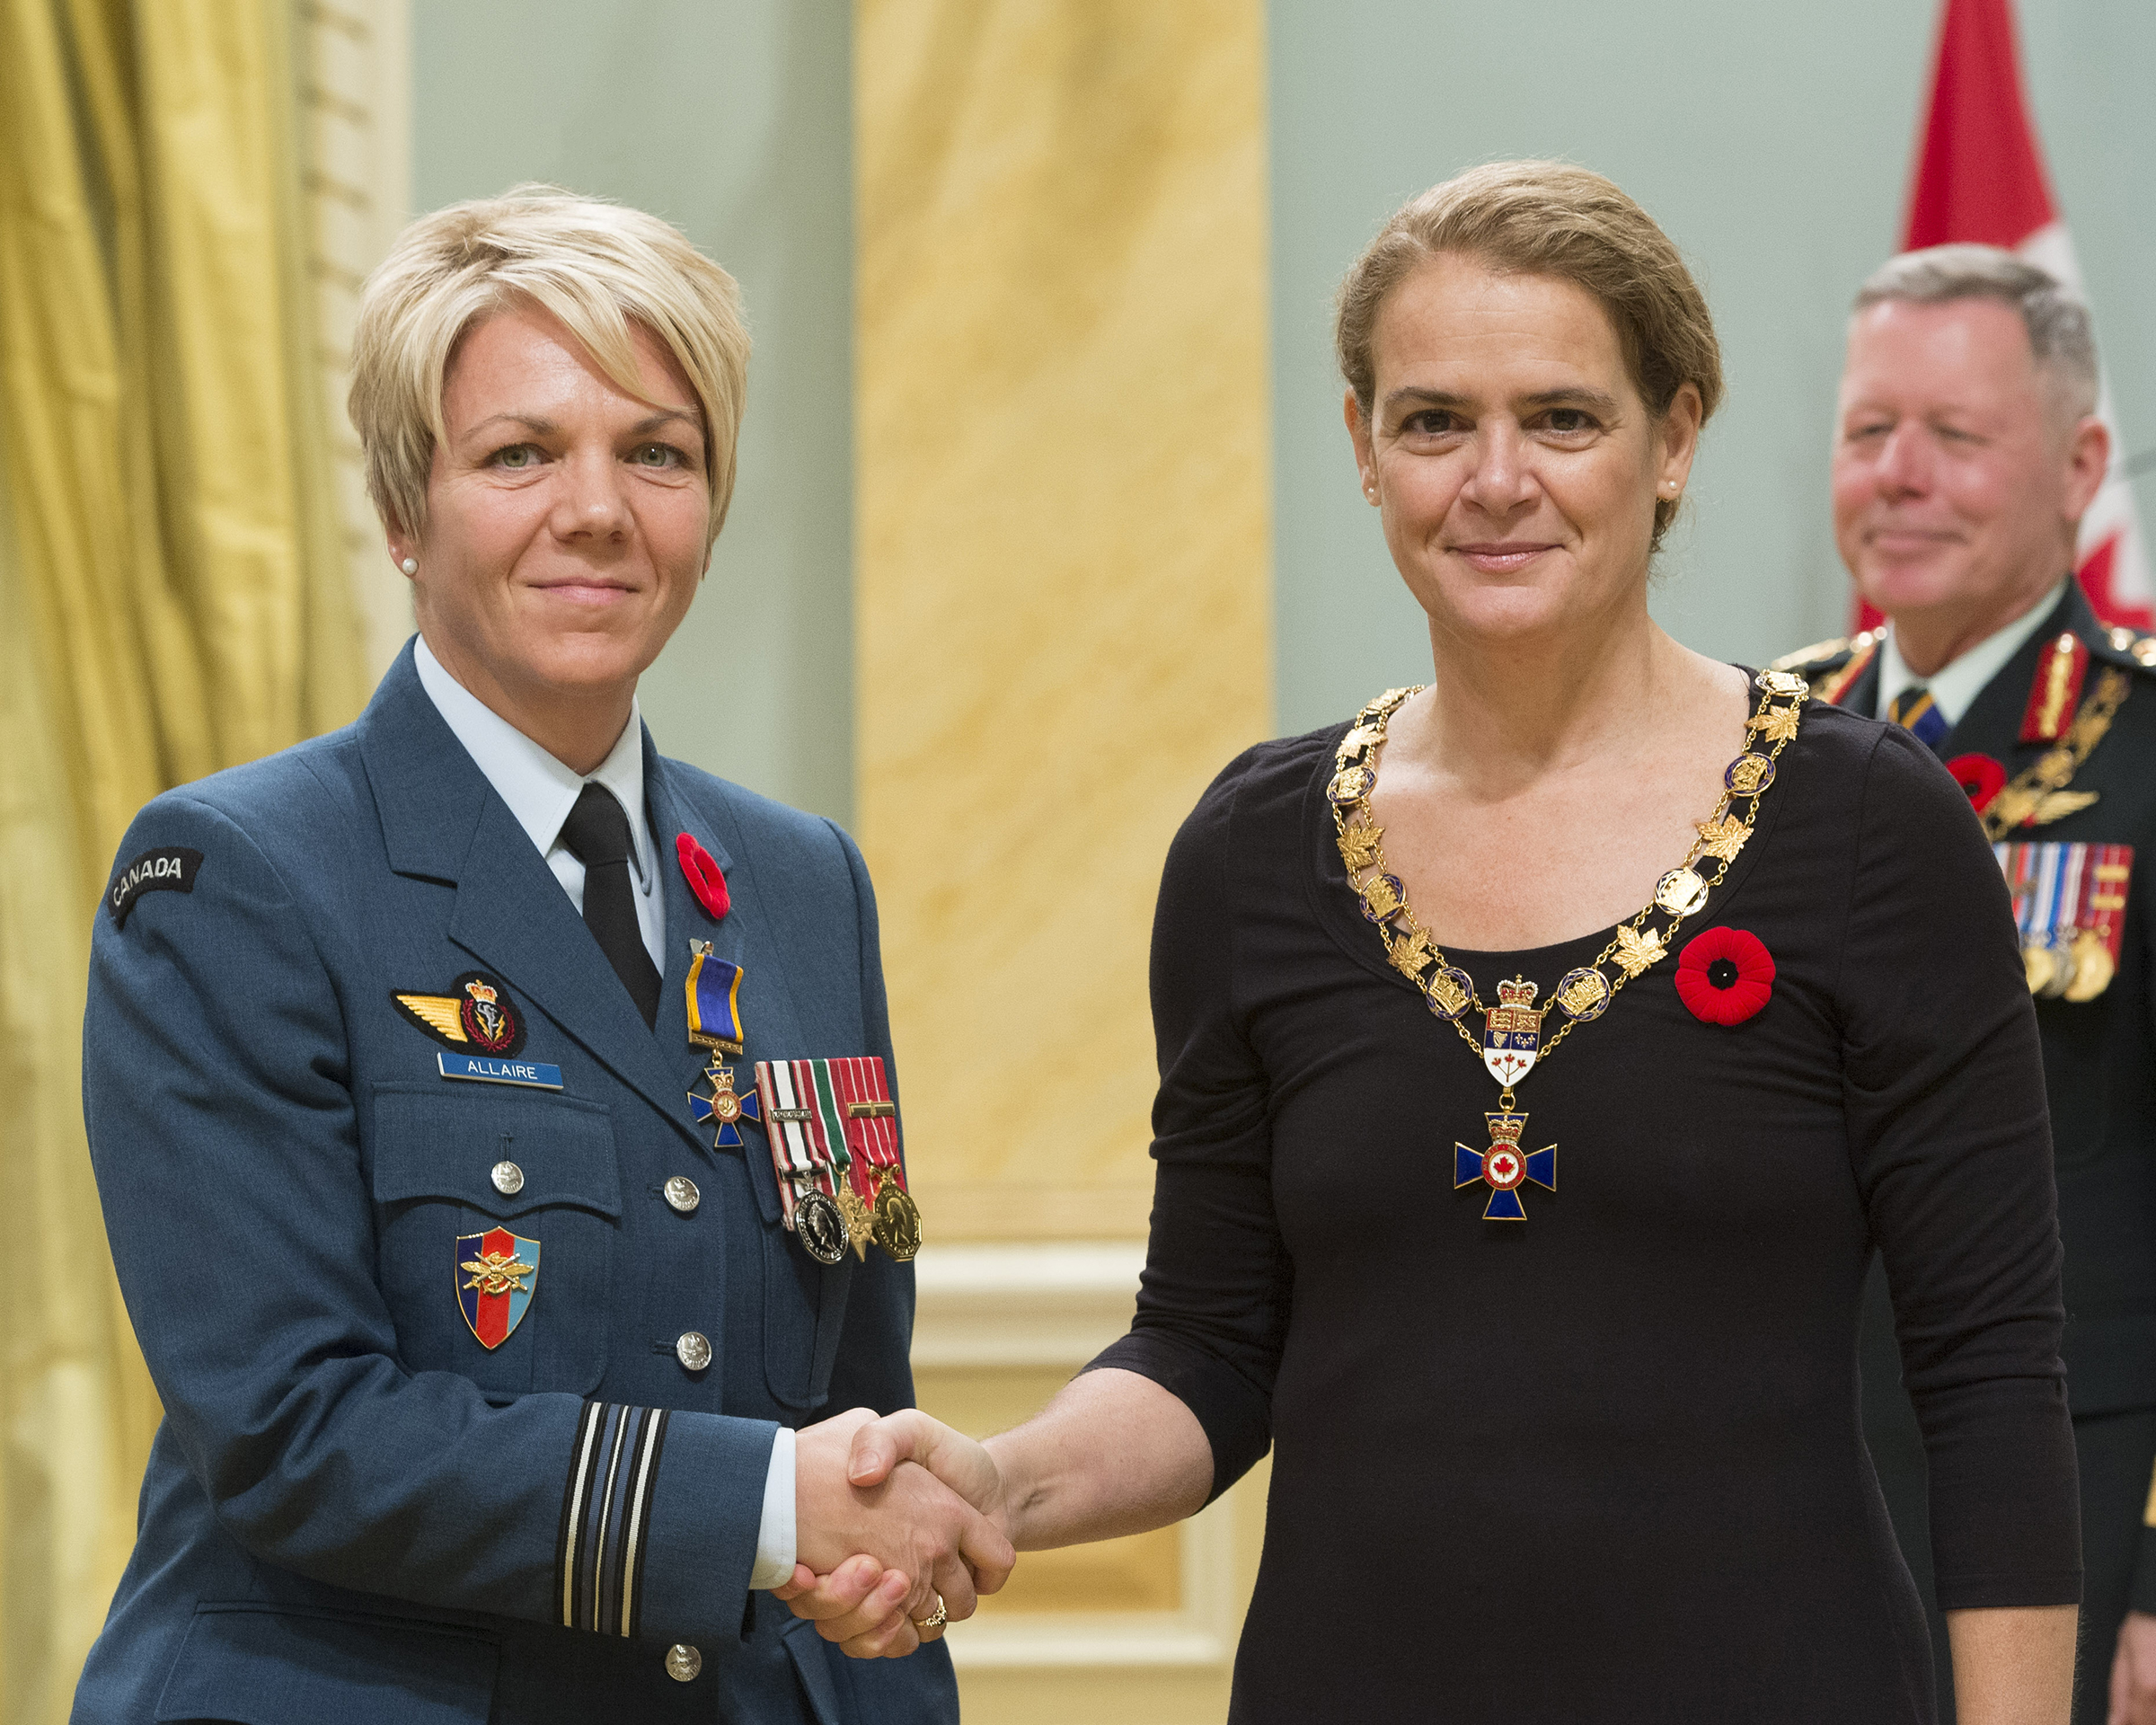 Governor General and Commander-in-Chief of Canada Julie Payette inducts Major Marie Josée Brigitte Allaire, Canadian Forces School of Communications and Electronics, Kingston, Ontario,